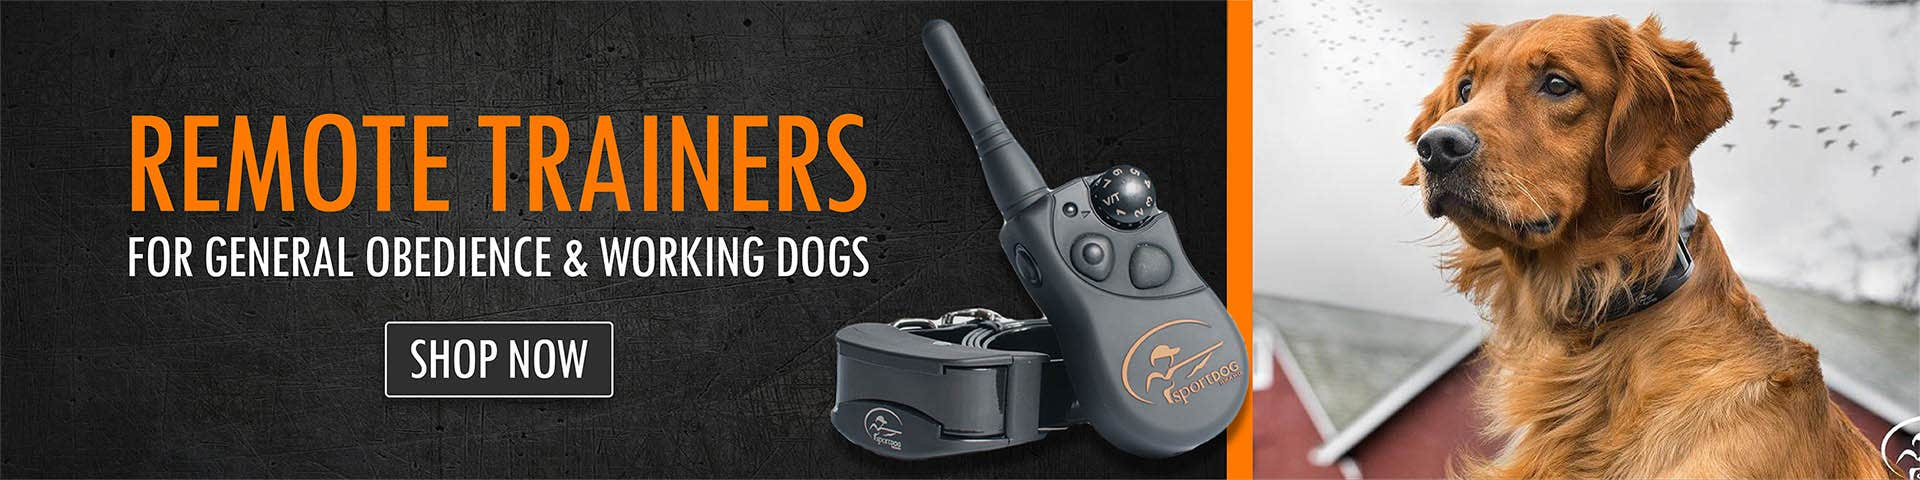 Remote Trainers for general obedience & working dogs